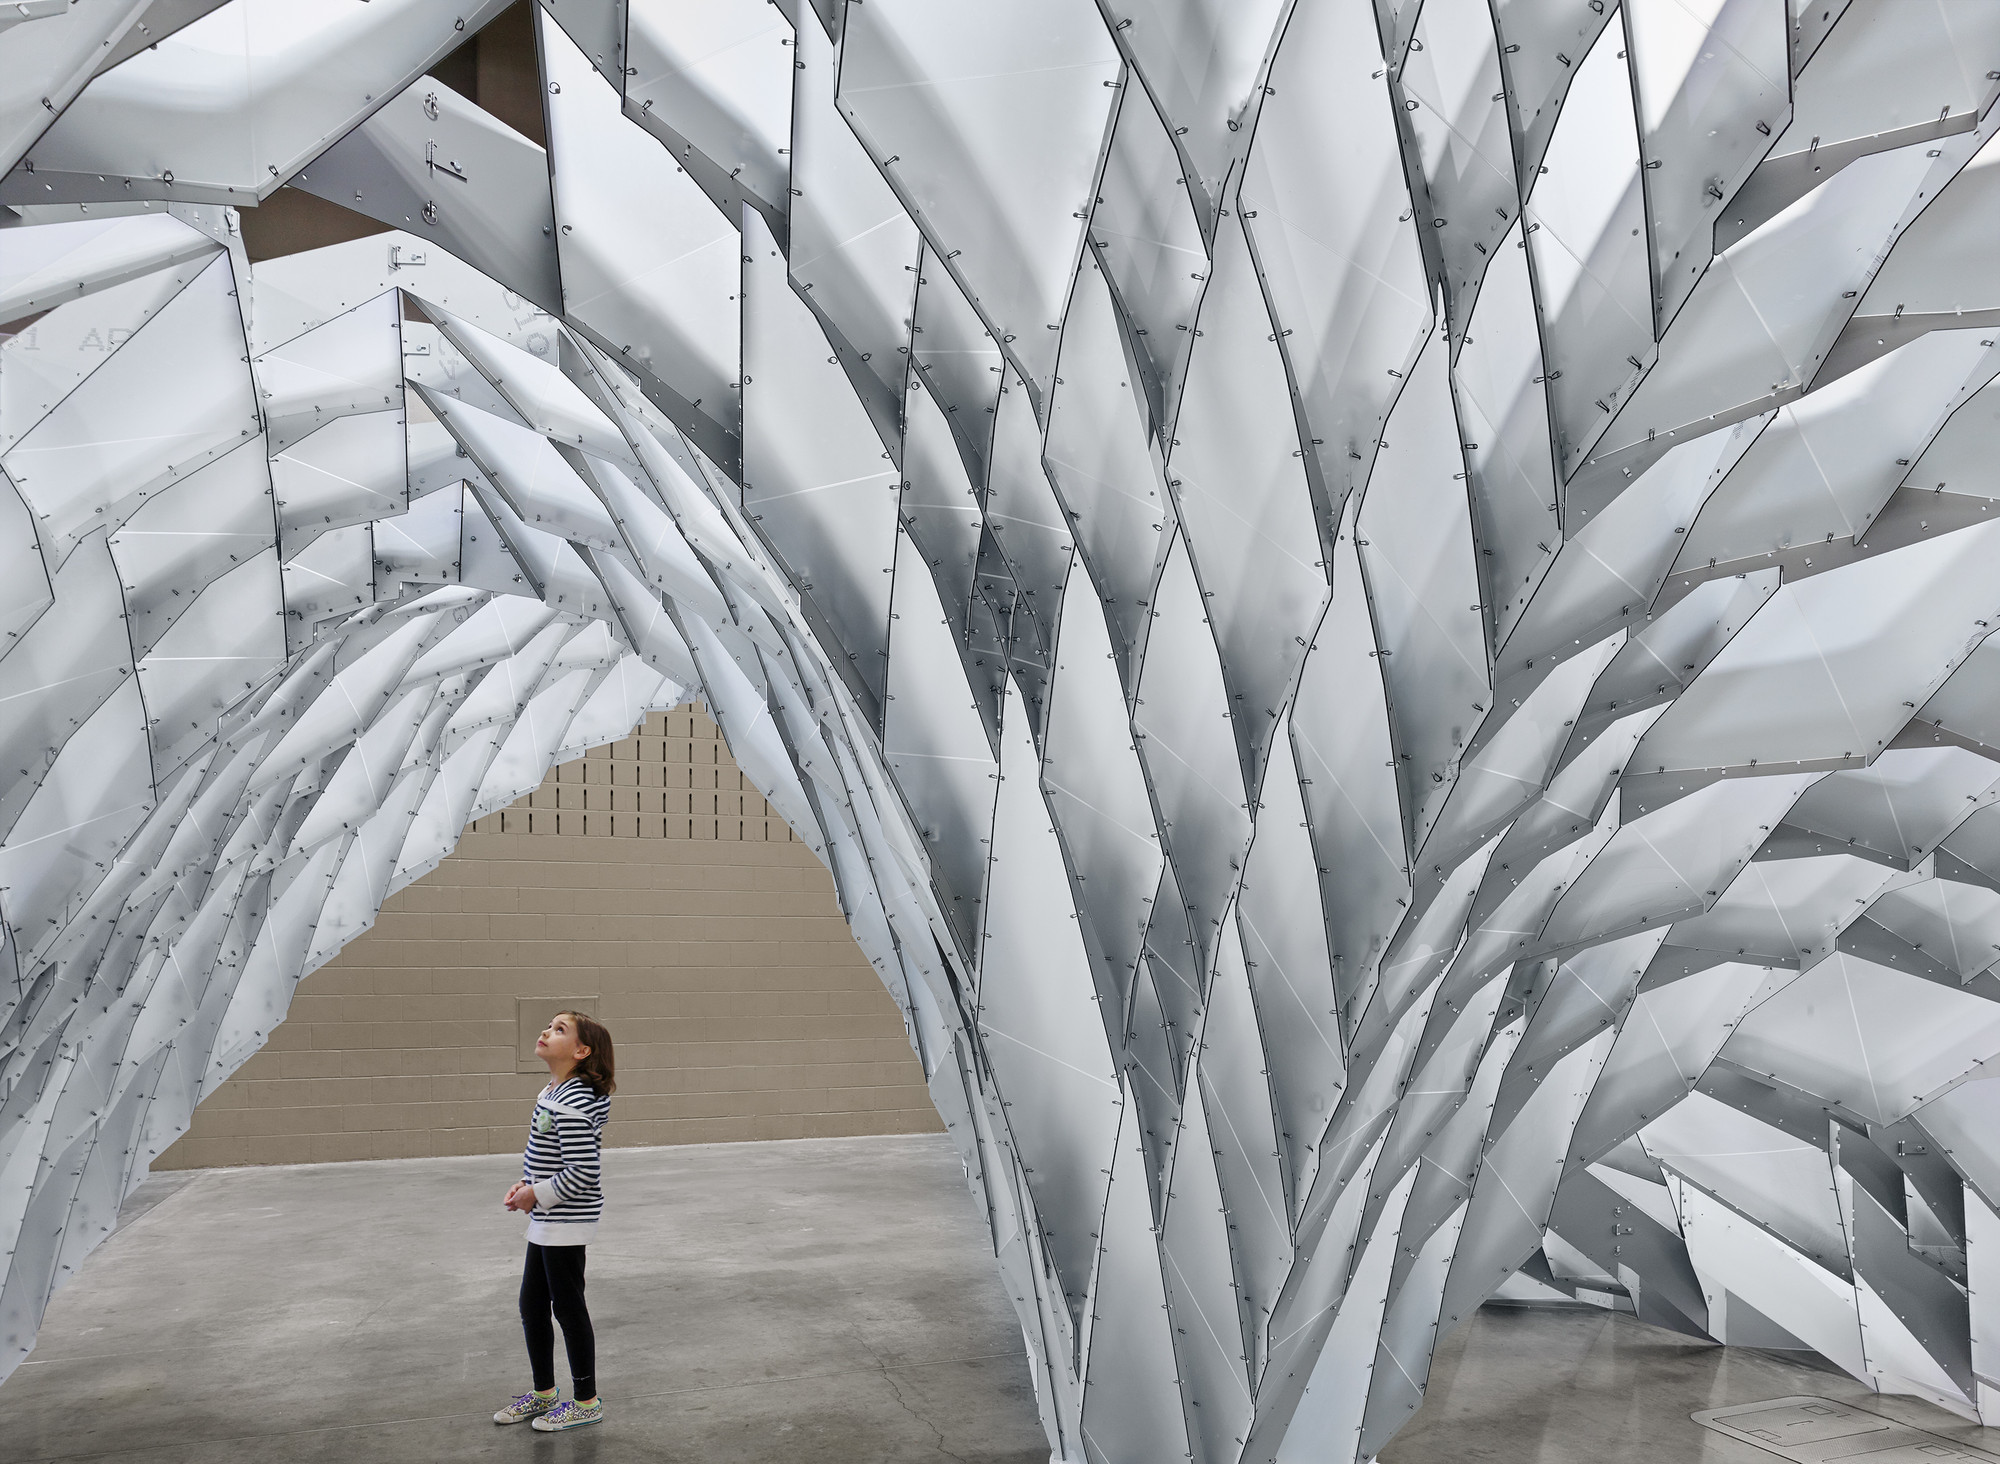 SXSW Features Parametric Vault Designed by OTA+ and UT Students, © Casey Dunn